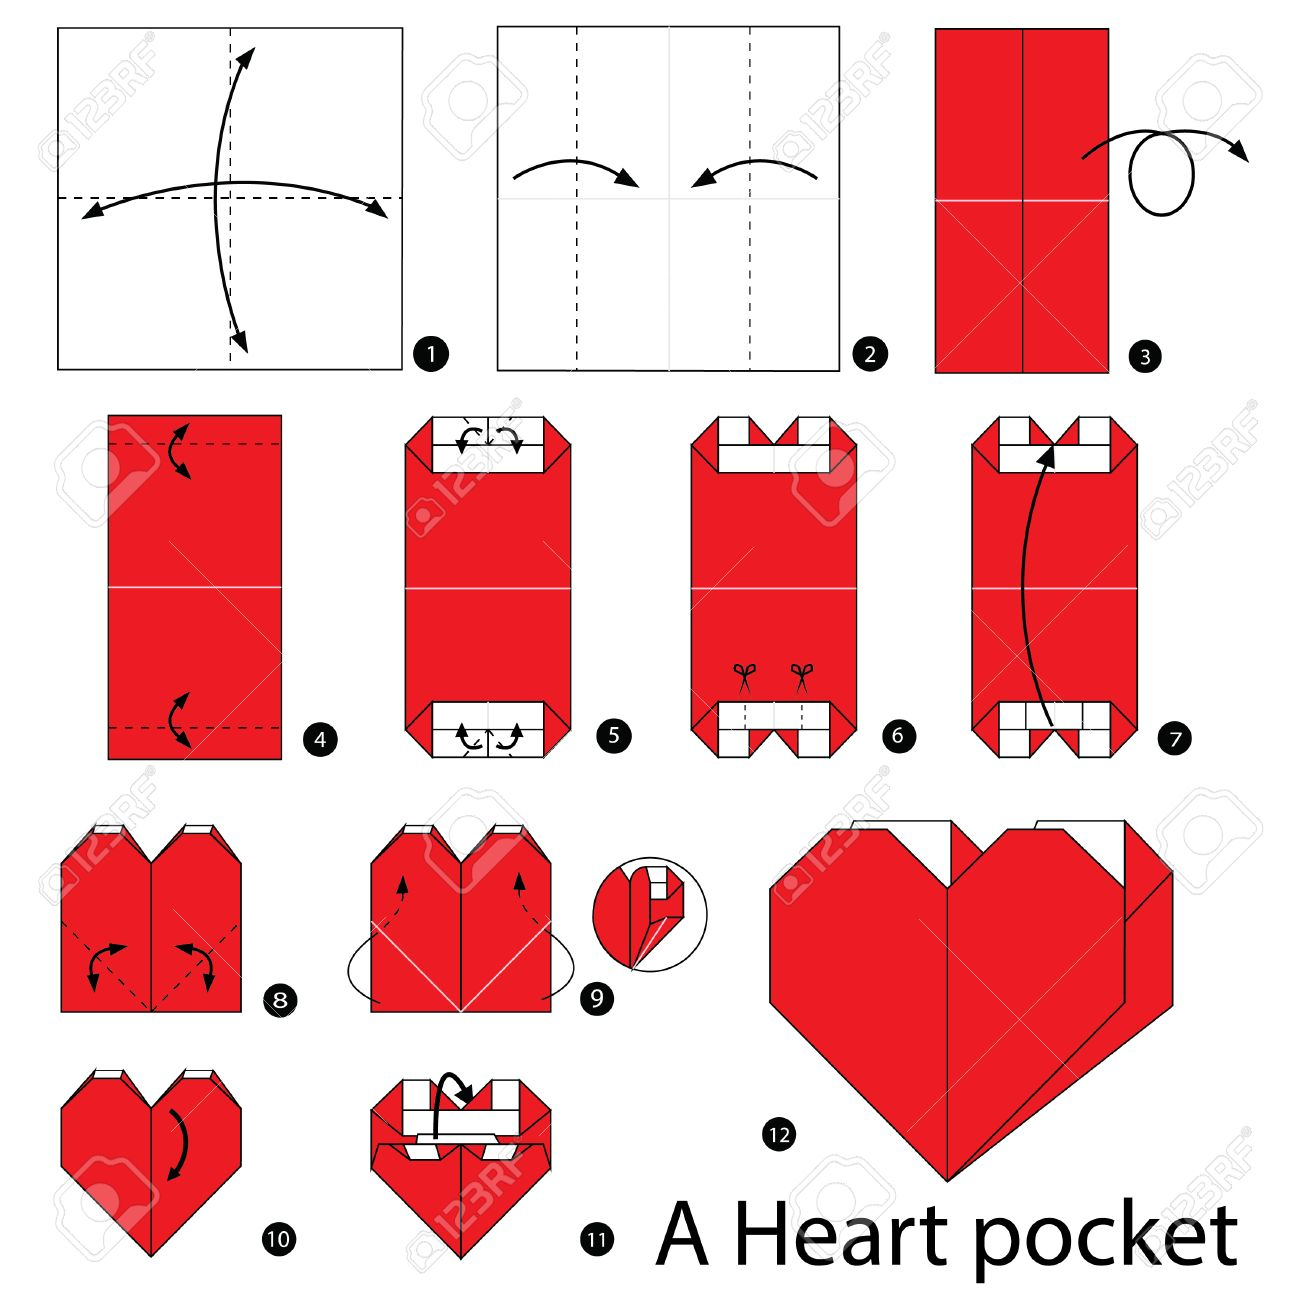 How To Make An Origami Heart Step Step Instructions How To Make Origami Heart Pocket Royalty